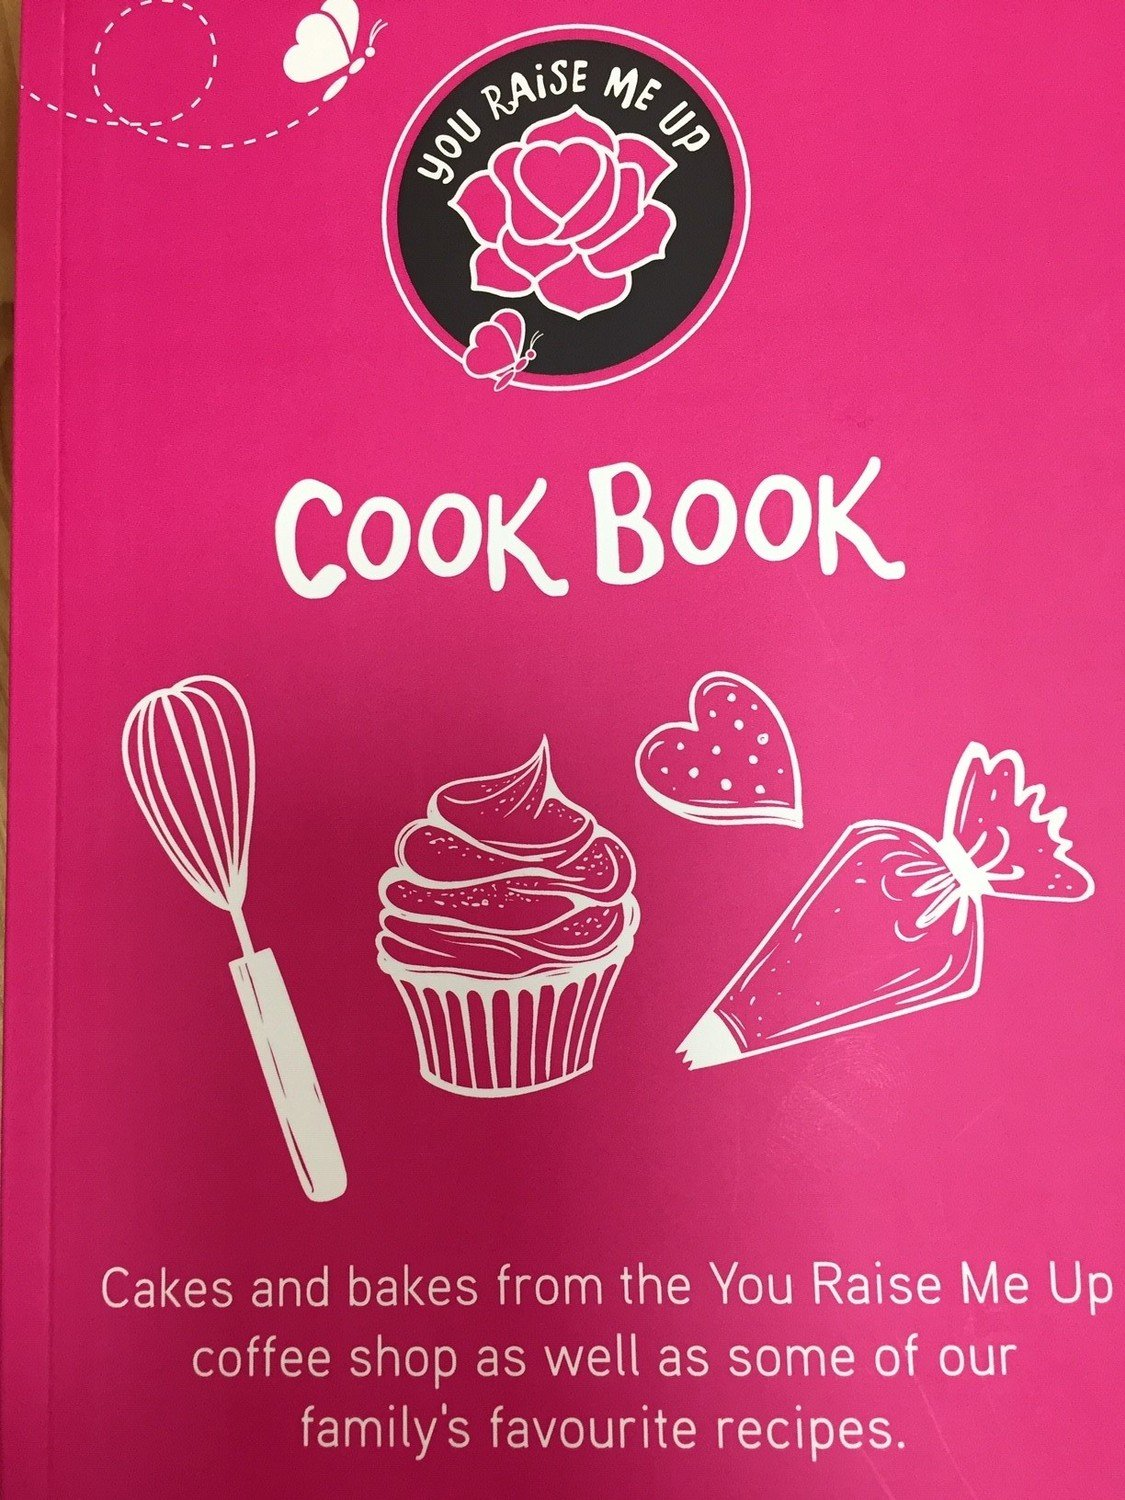 THE YOU RAISE ME UP COOKBOOK